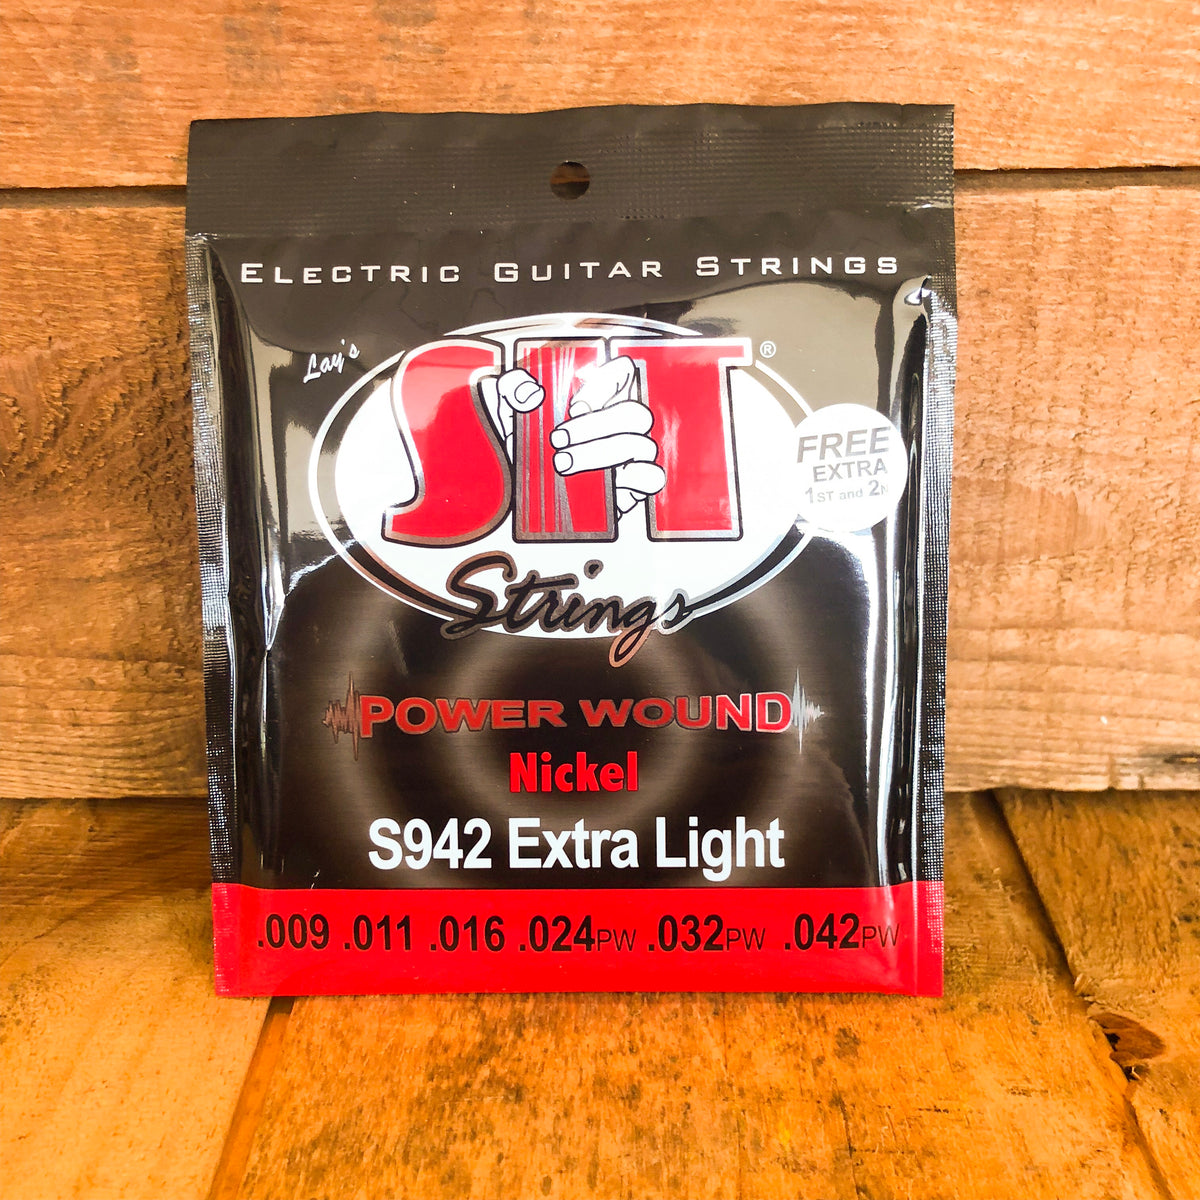 S.I.T. Power Wound Electric Guitar Strings